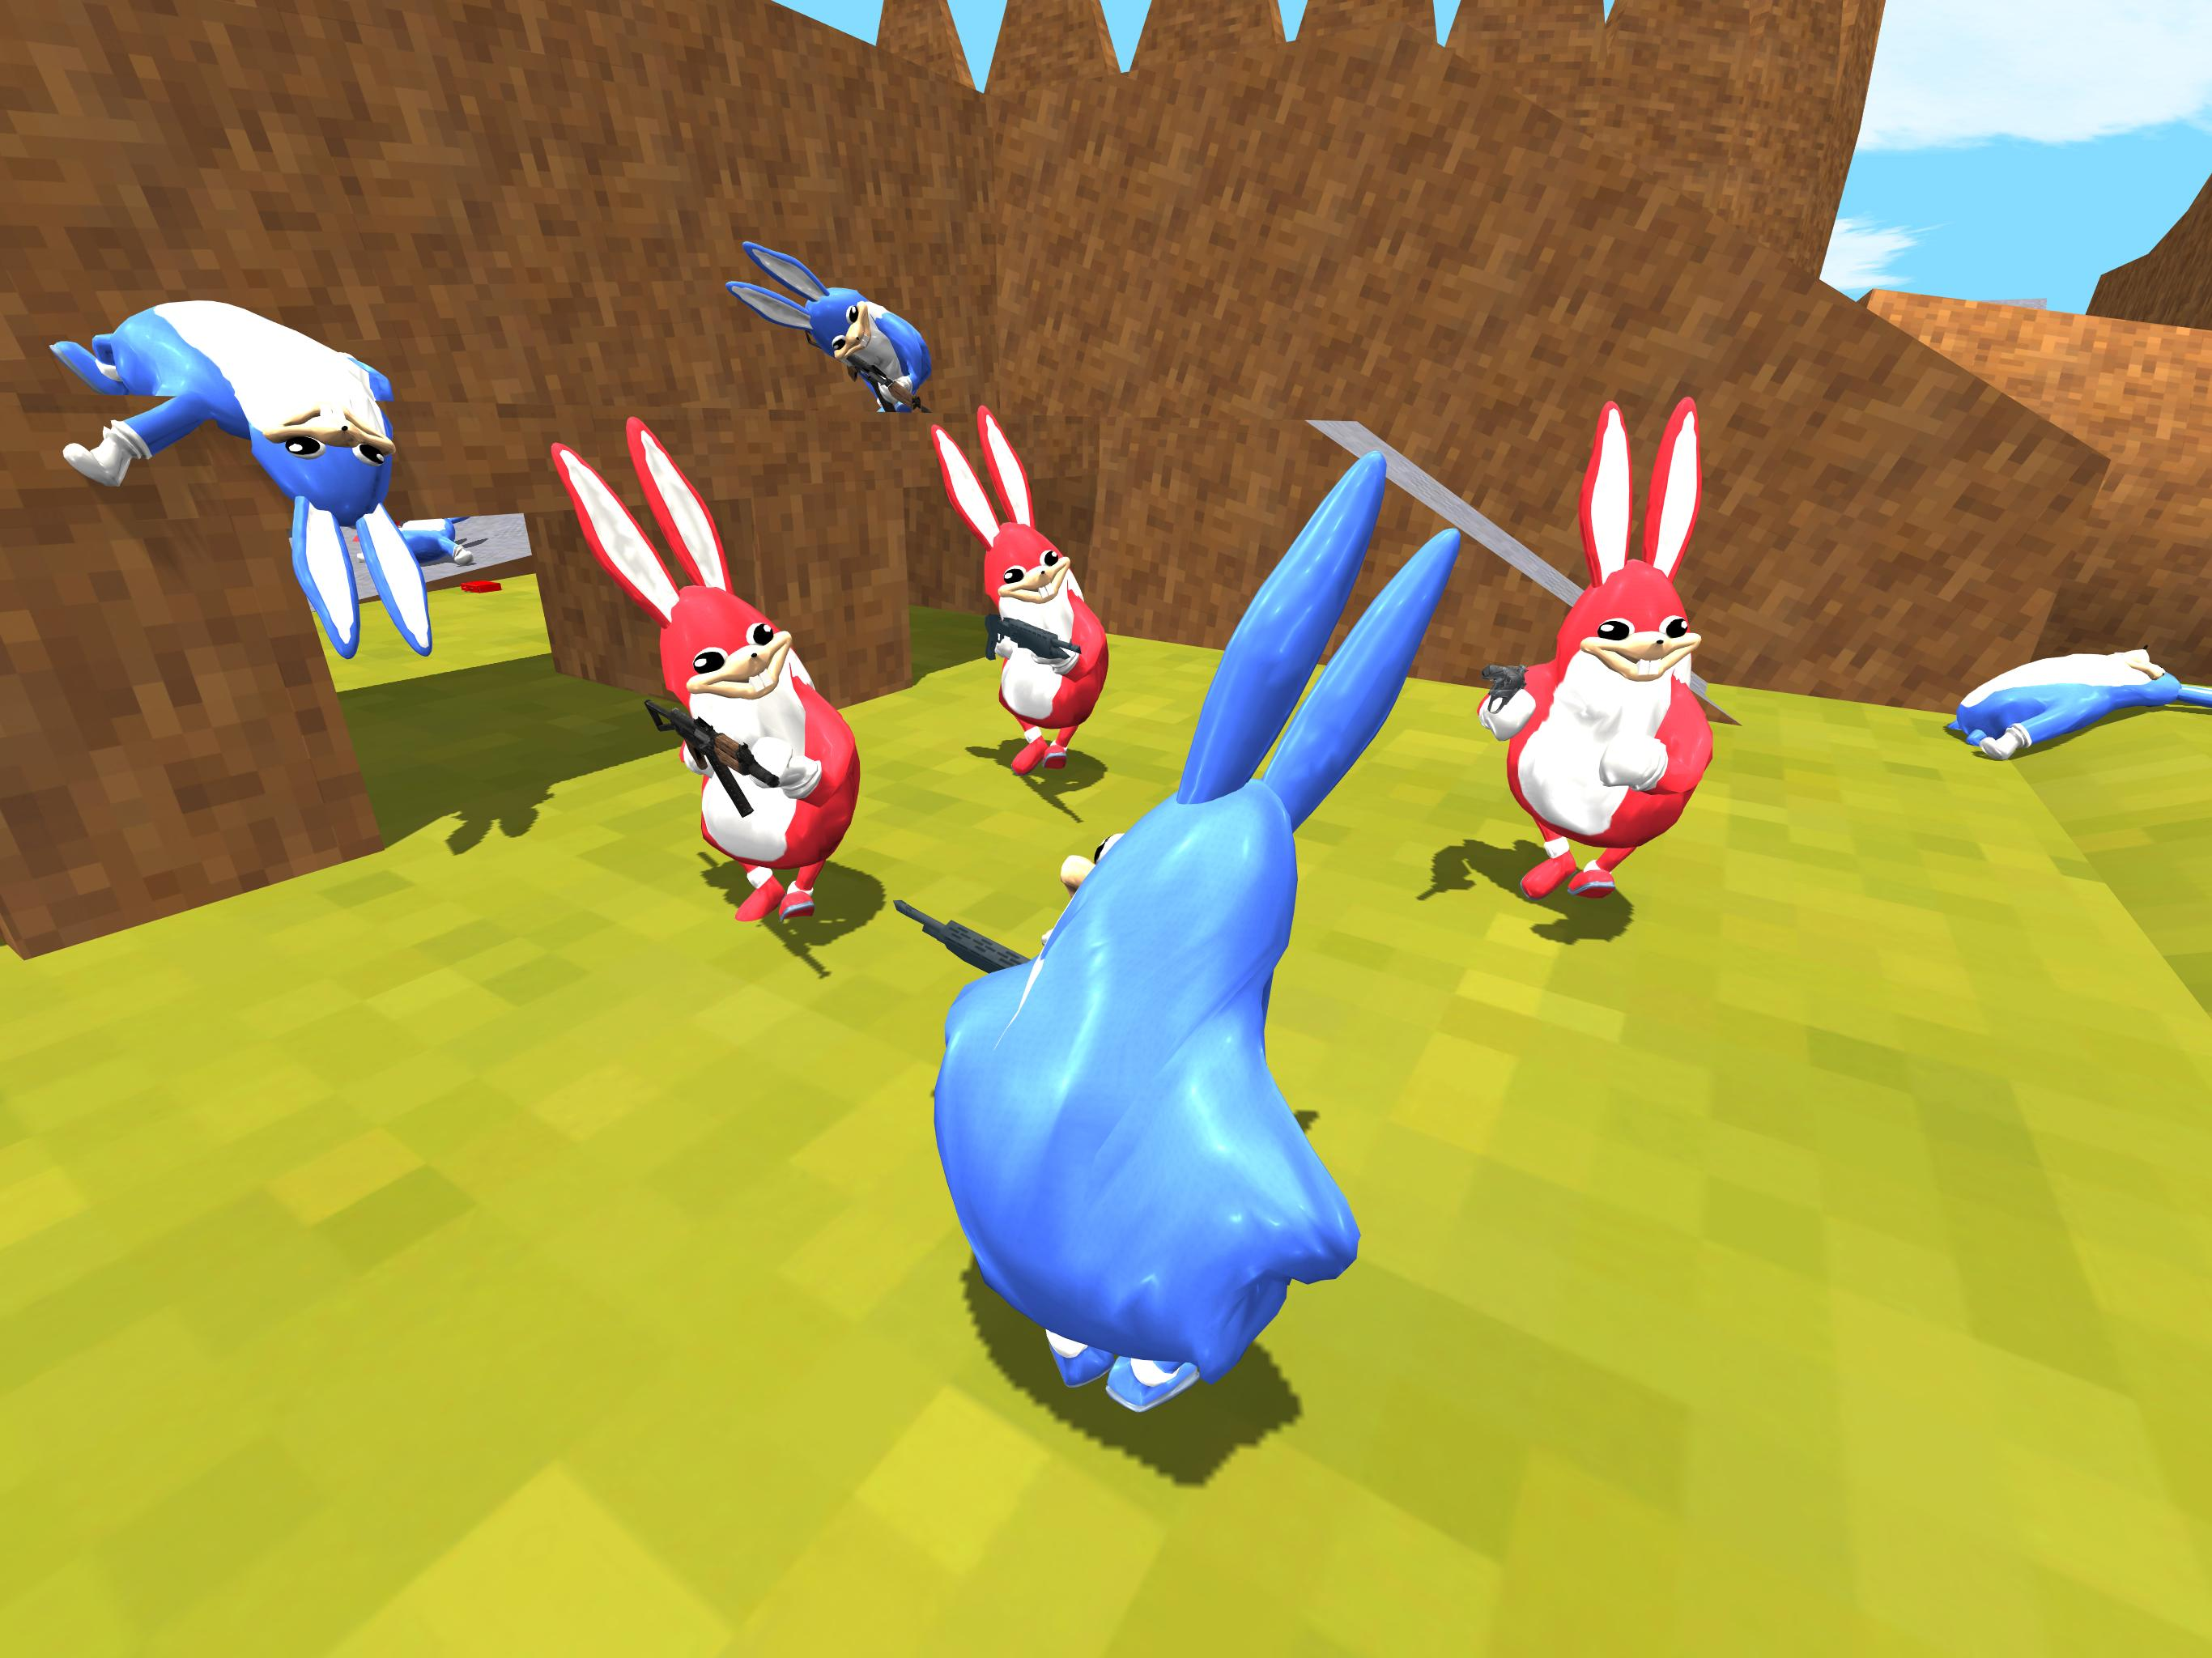 Ugandan Big Chungus Knuckles Battle Royale For Android Apk Download